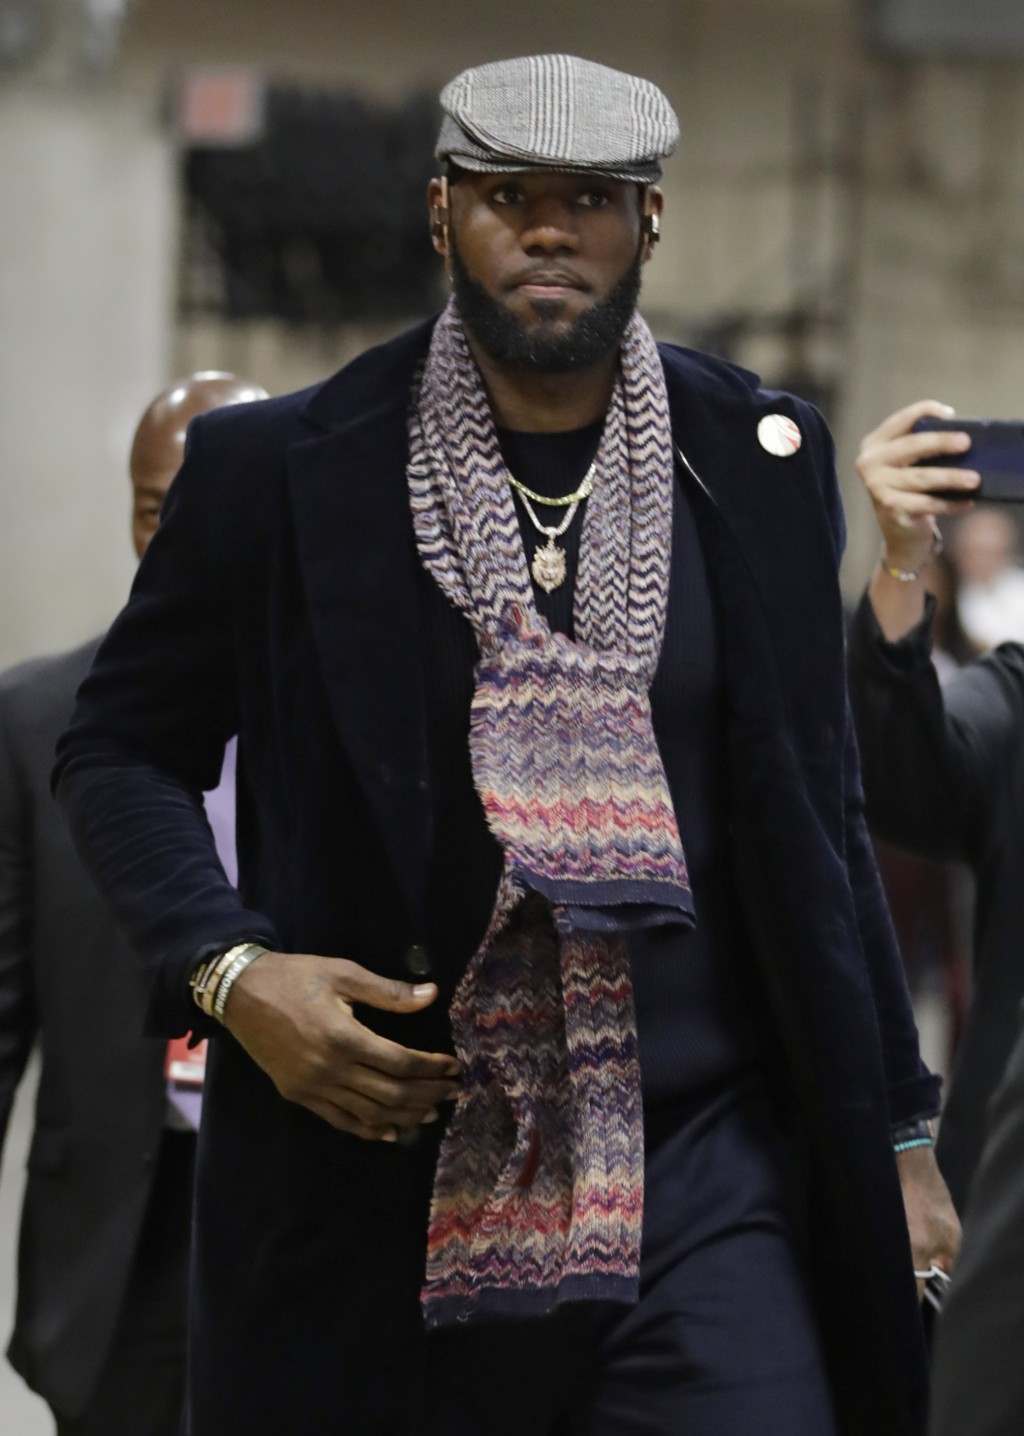 Los Angeles Lakers' LeBron James enters the arena before an NBA basketball game against the Cleveland Cavaliers, Wednesday, Nov. 21, 2018, in Clevelan...